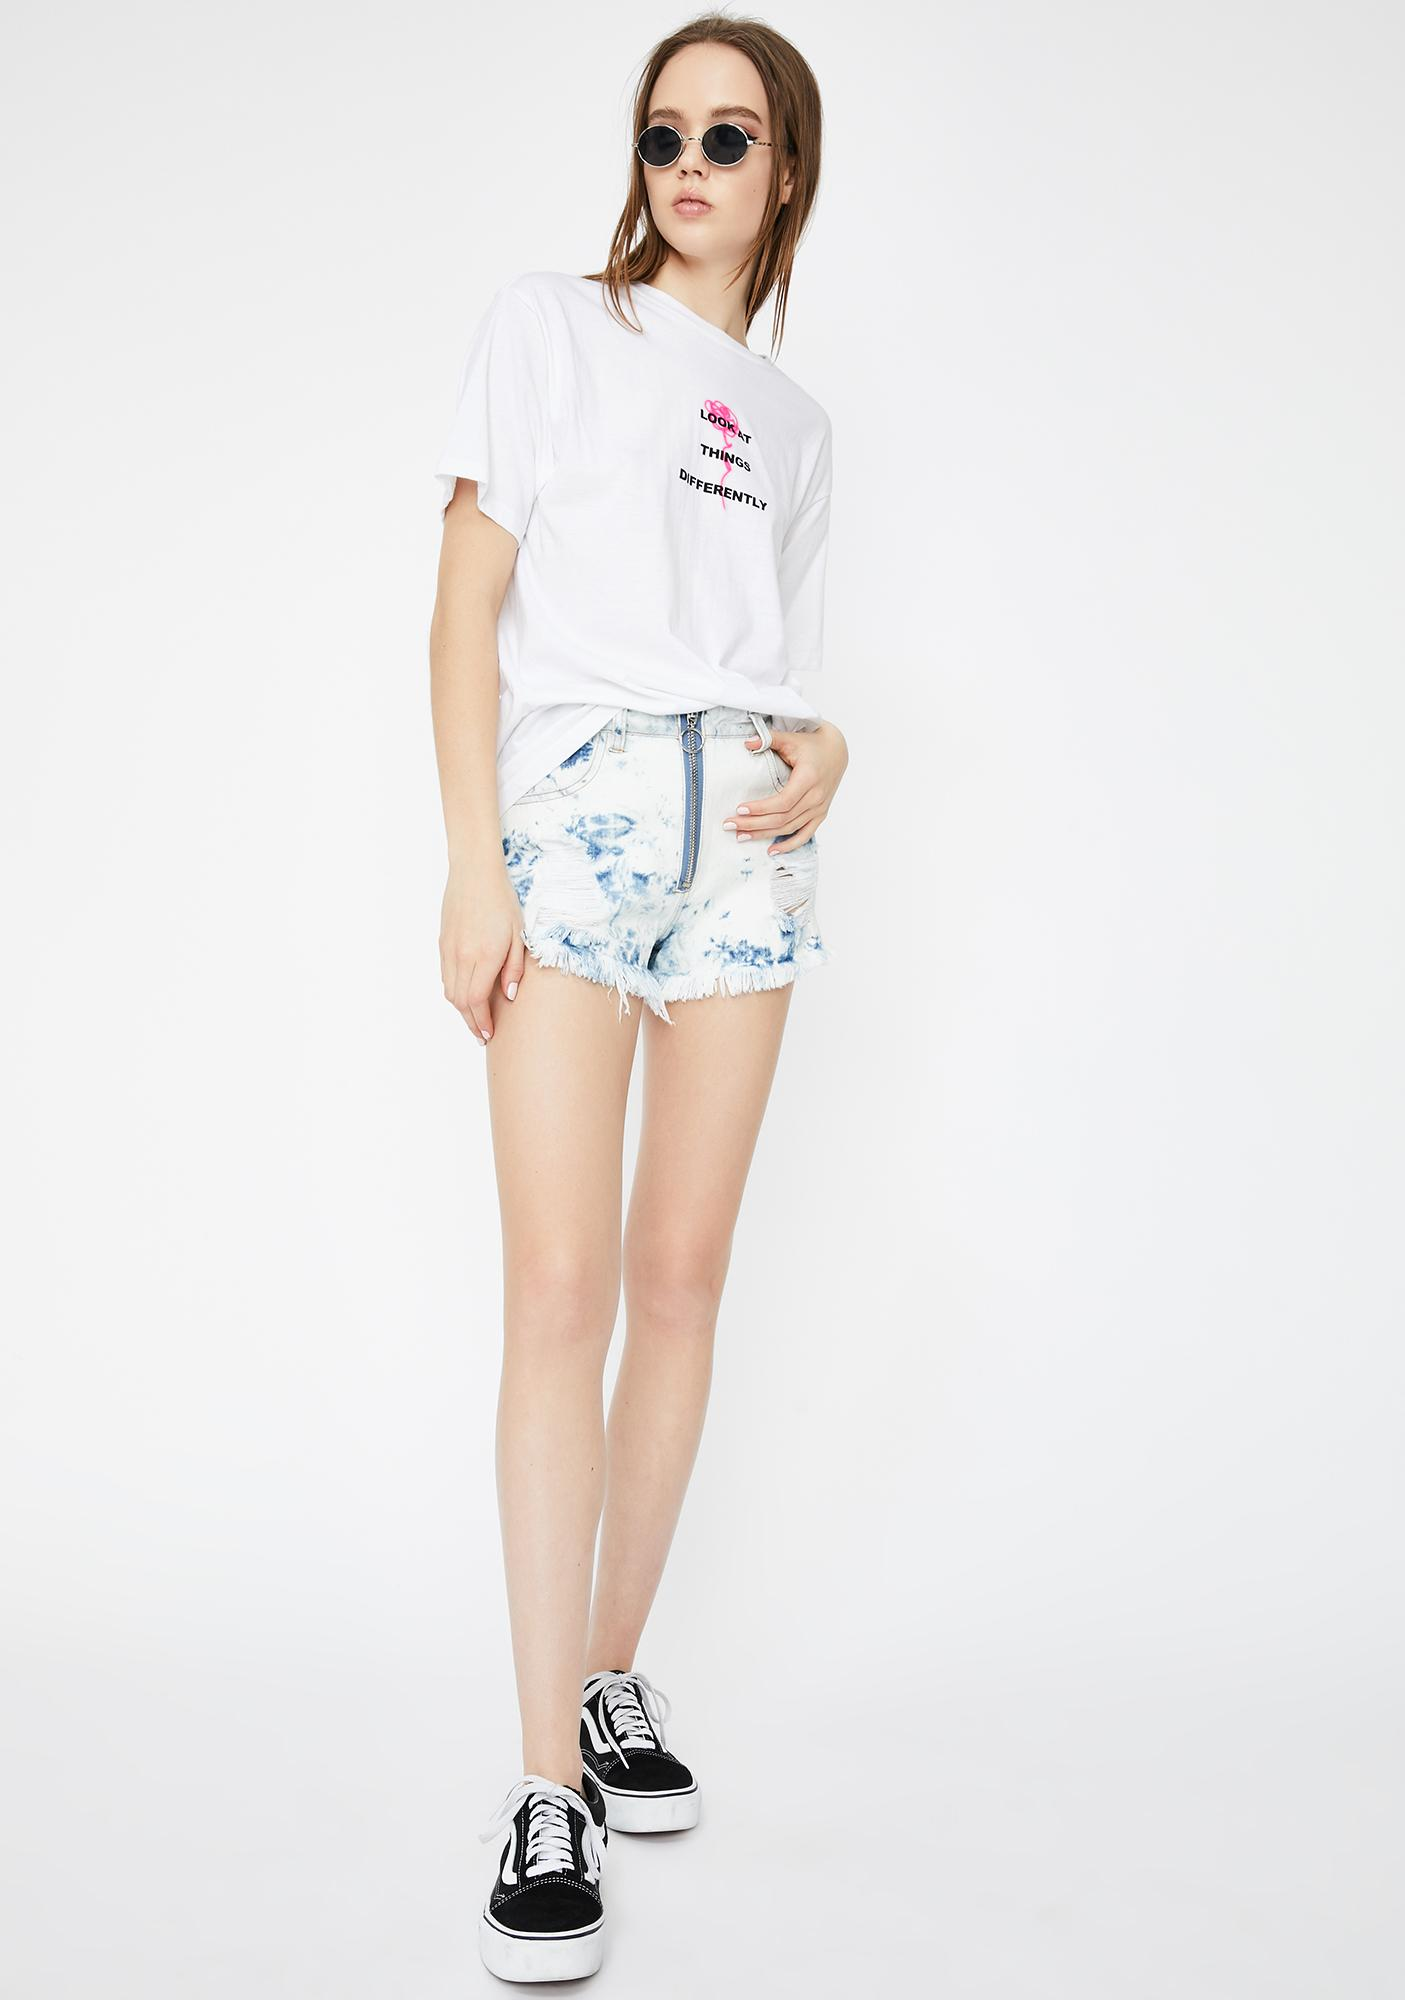 By Samii Ryan White Perspective Graphic Tee